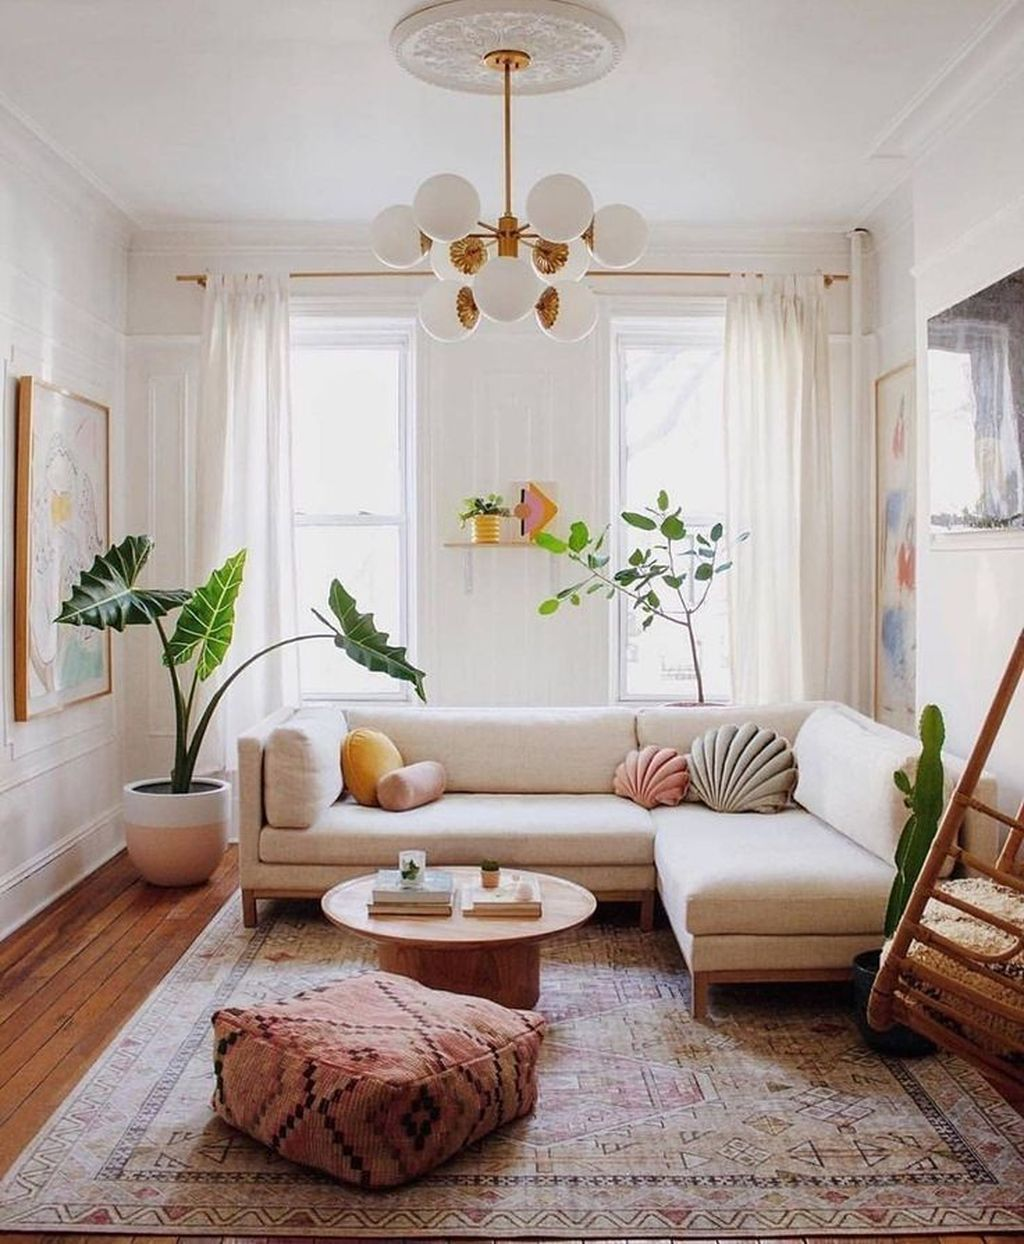 33 Beautiful Contemporary Living Room Decoration Ideas Pimphomee In 2020 Bohemian Living Room Bohemian Living Room Decor Couch Decor